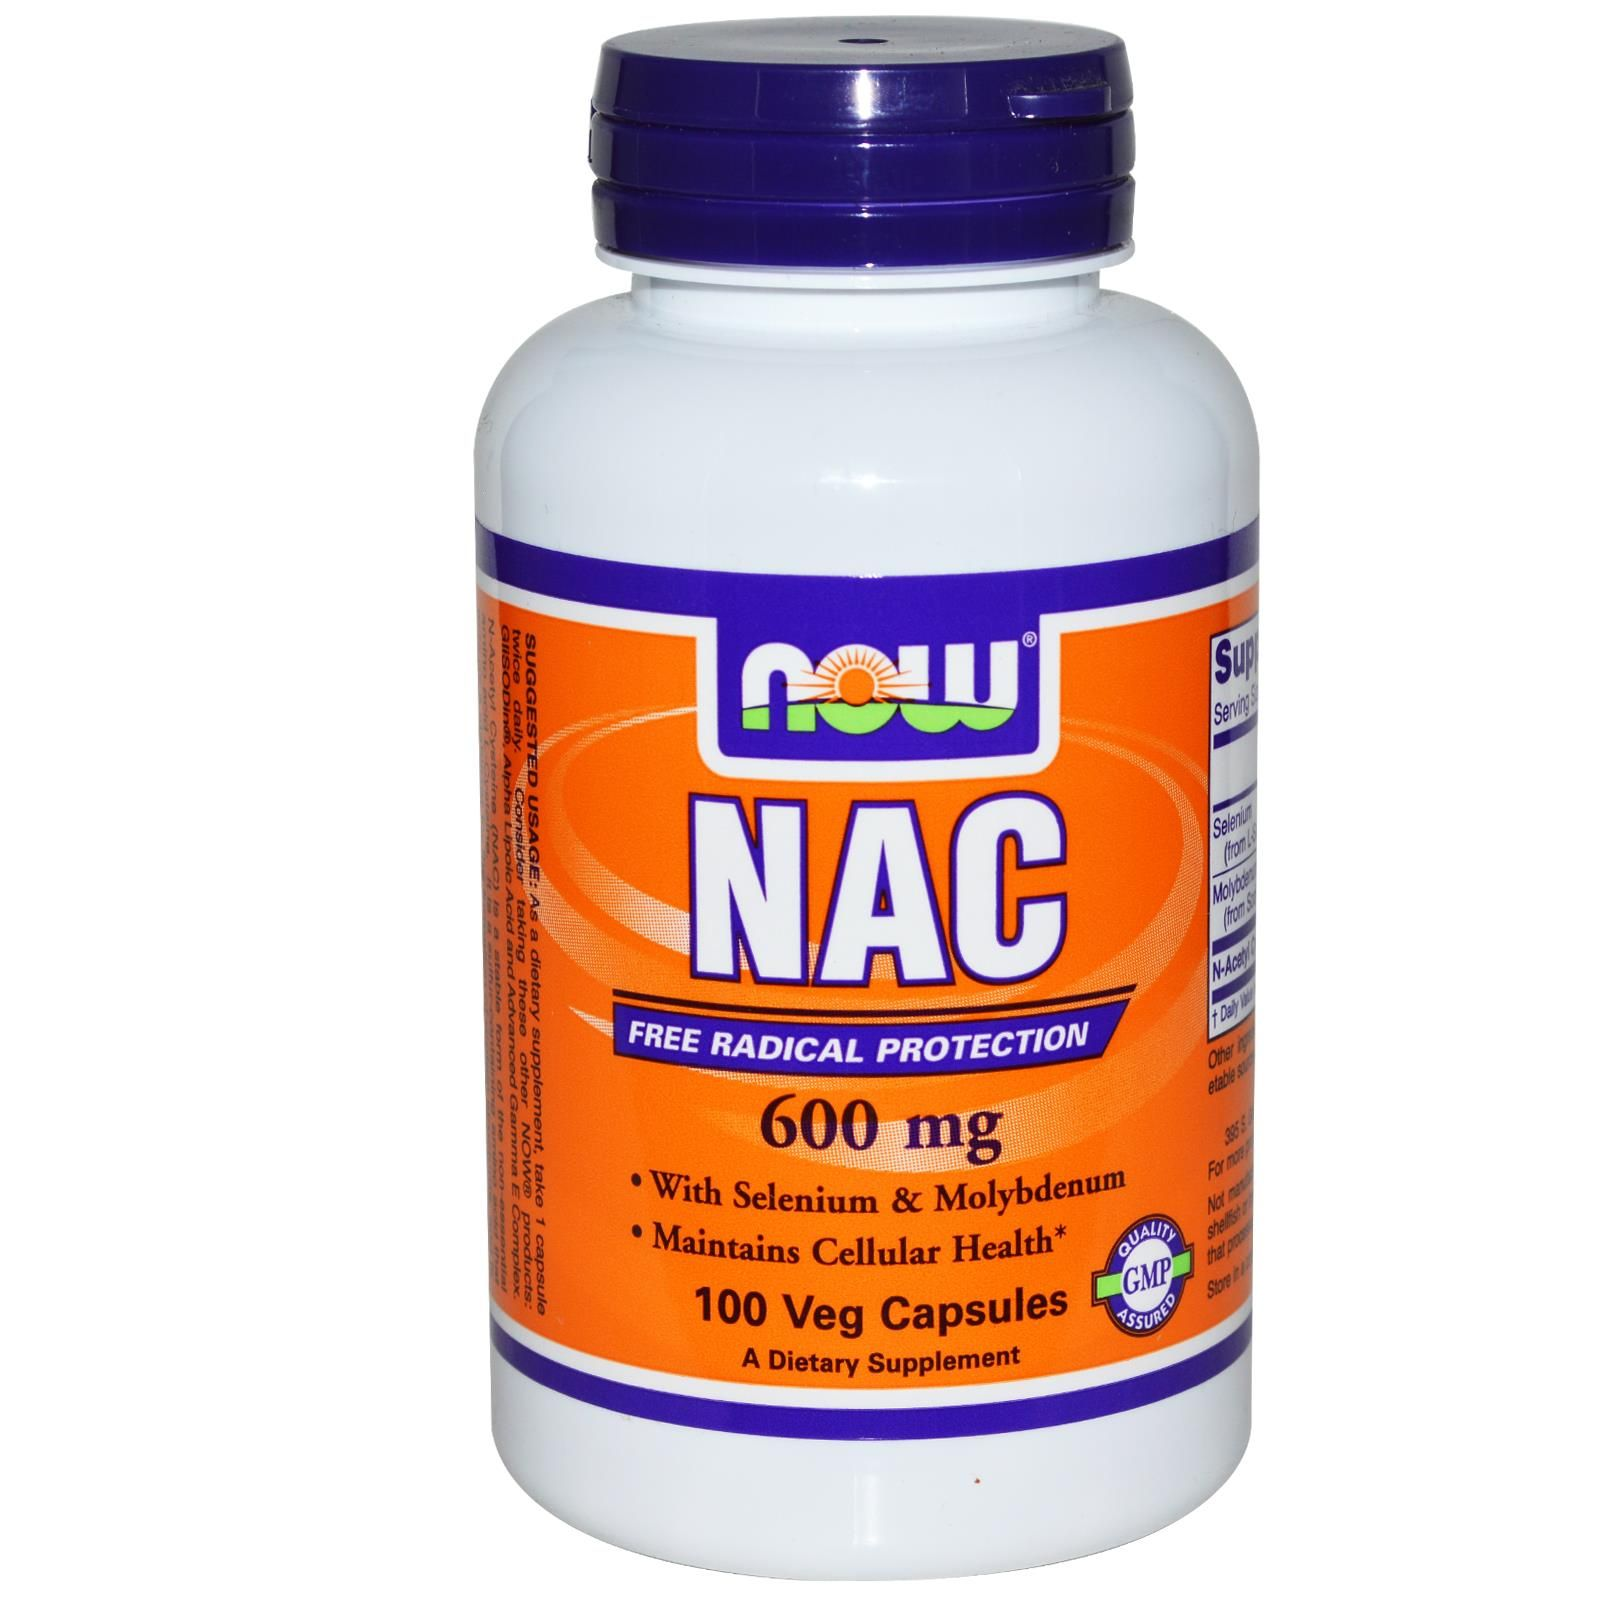 No Flu shot - Yes NAC! N-acetylcysteine is a variant of the amino